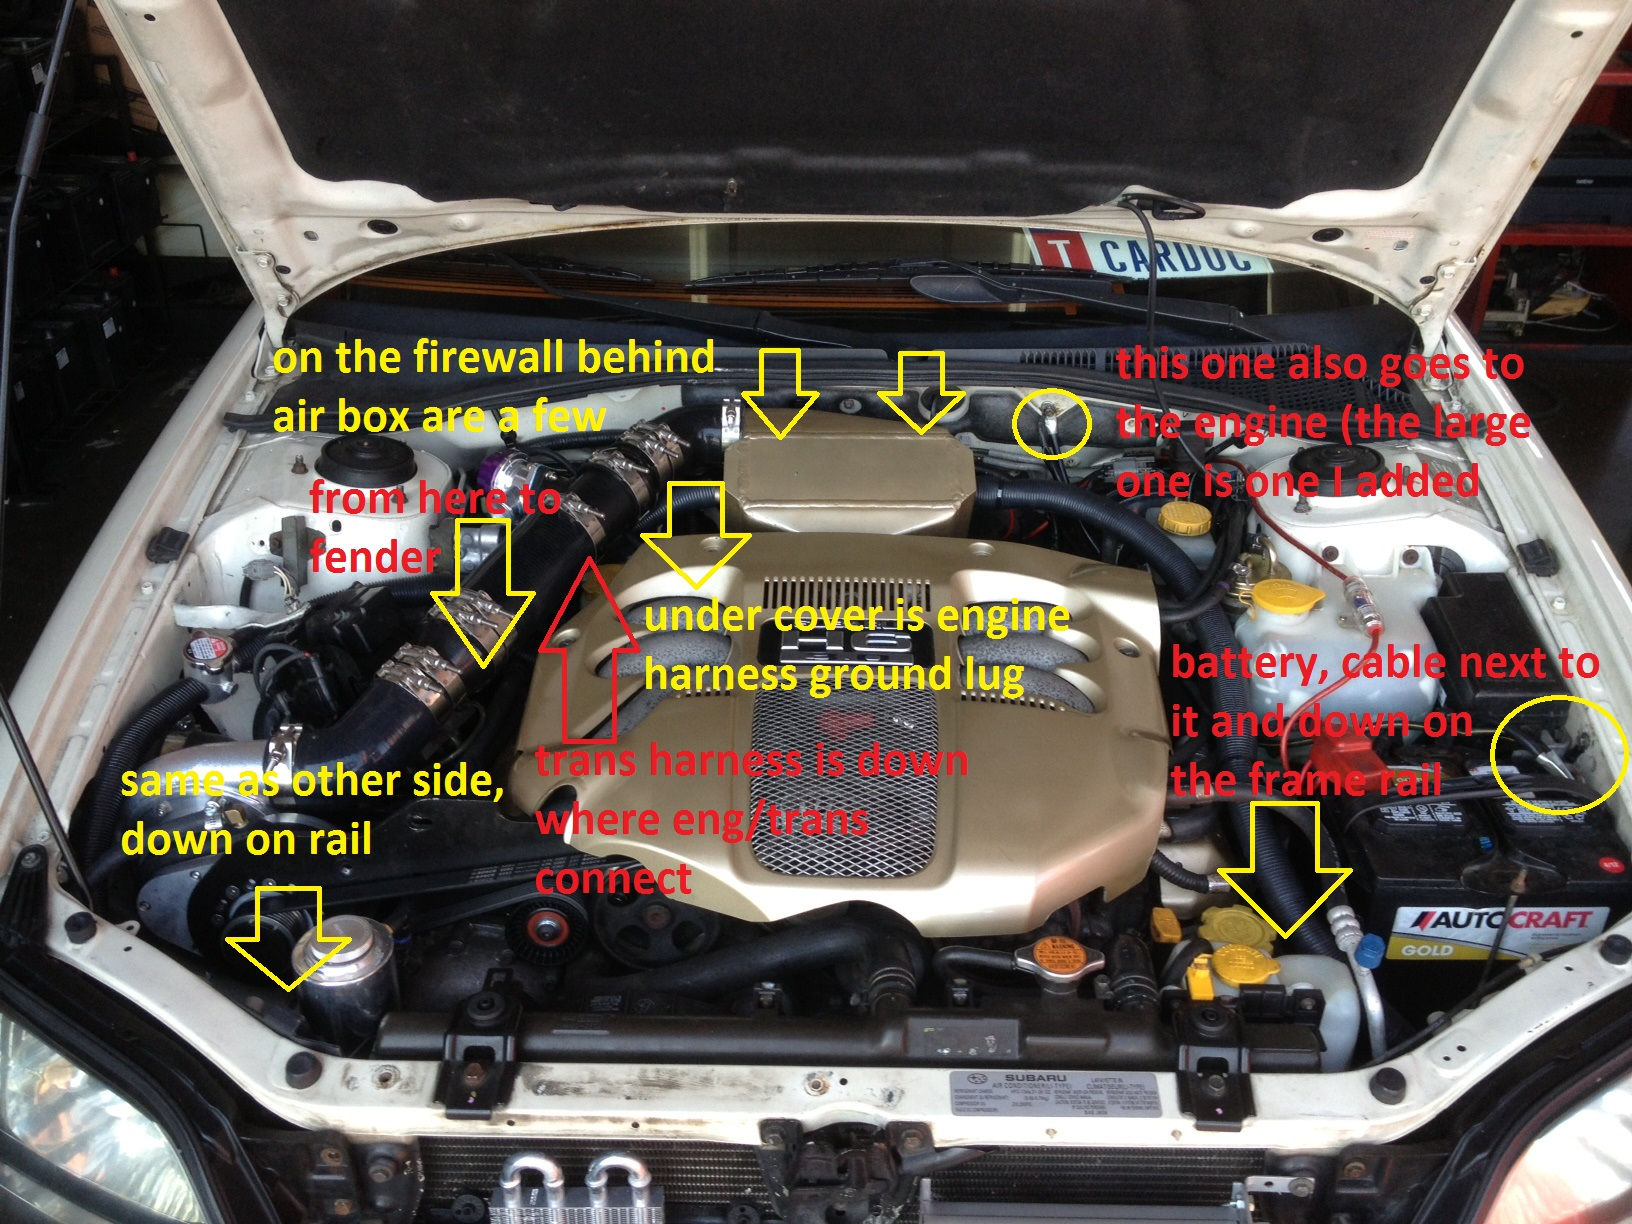 Ford Fuel Injection Wiring Harness moreover Subaru Outback Engine Diagram besides LS1 Ignition Coil Wiring Diagram together with 2012 GMC Yukon XL Denali additionally 2006 Hyundai Tucson. on race car battery wiring kits